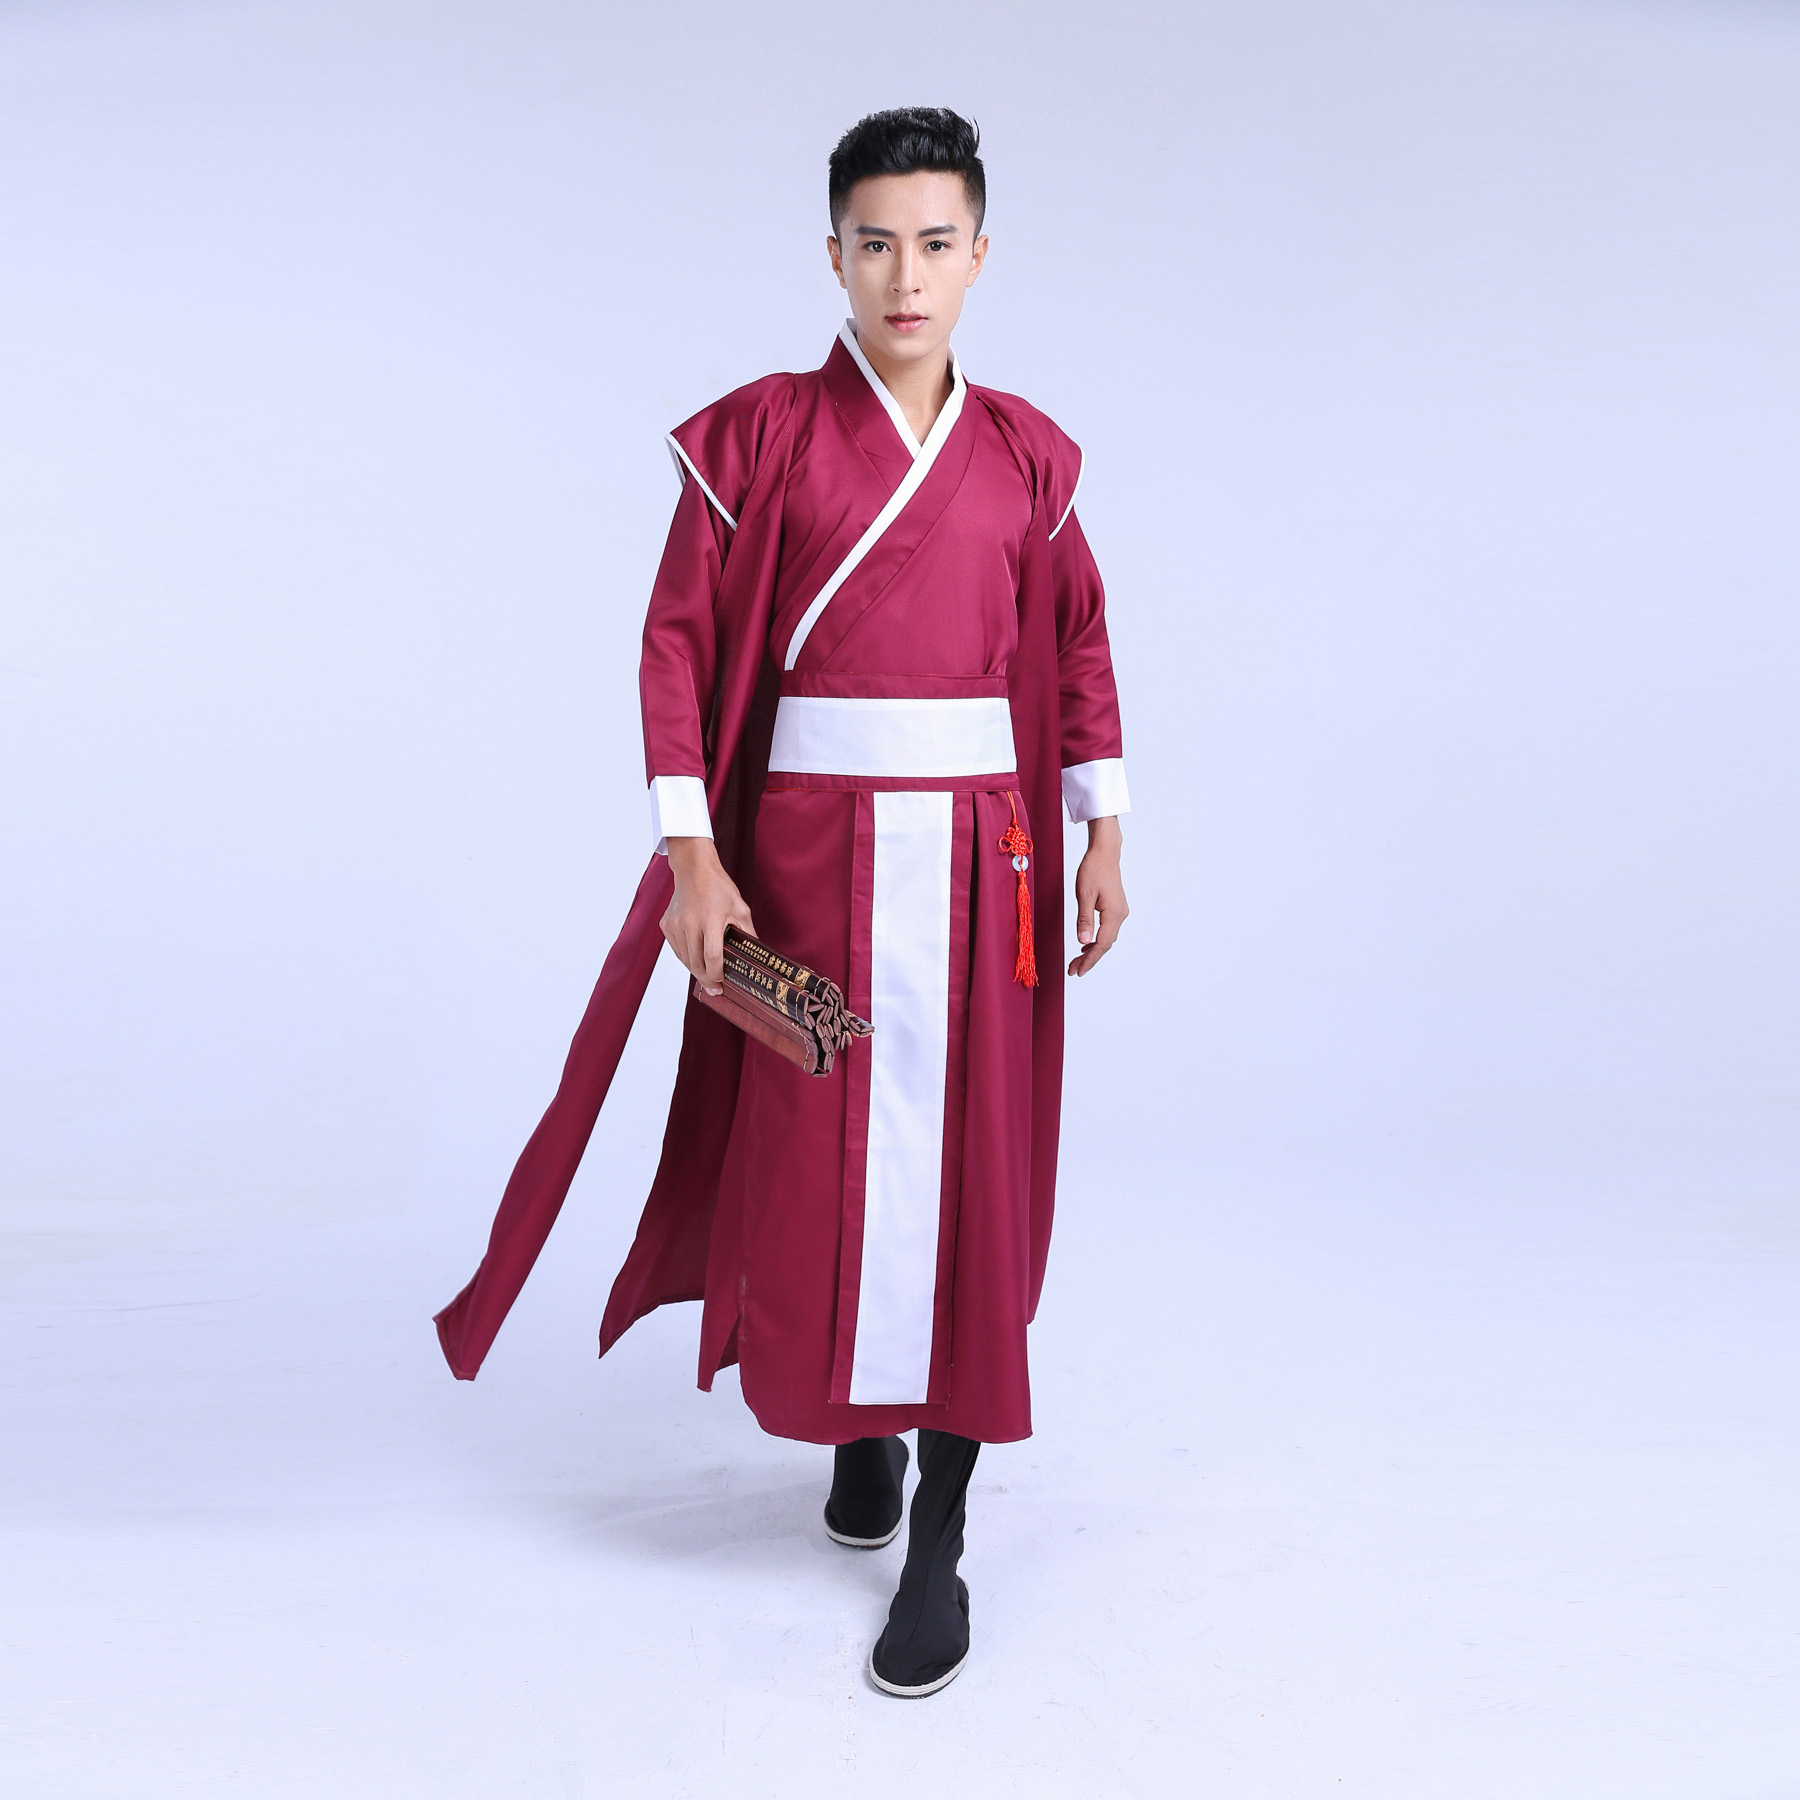 Compare prices on dynasty outfits online shopping buy low for House of dynasty order online